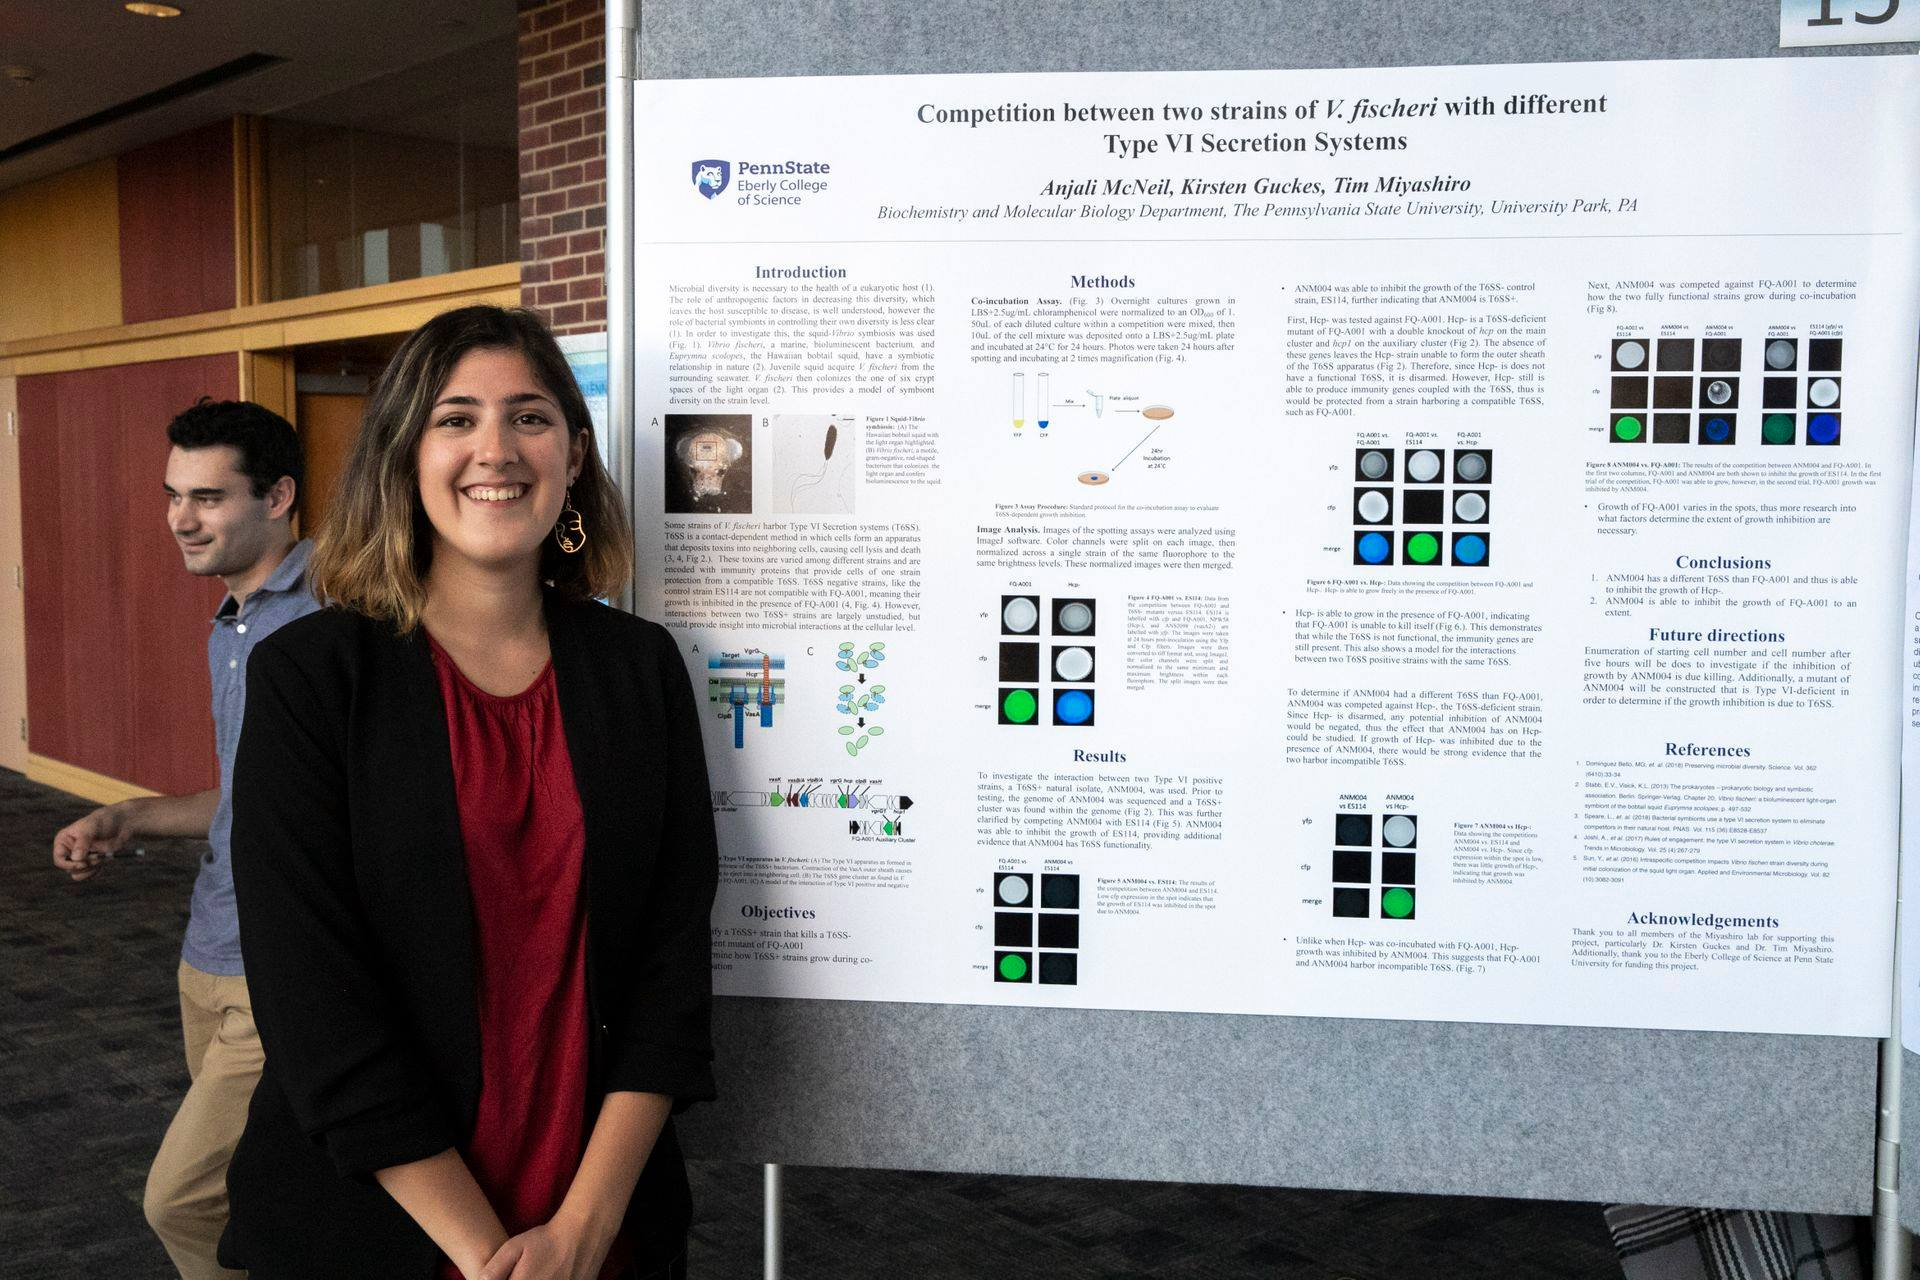 Image of Anjali McNeil standing next to her research poster at the Undergraduate Research Exhibition at Penn State